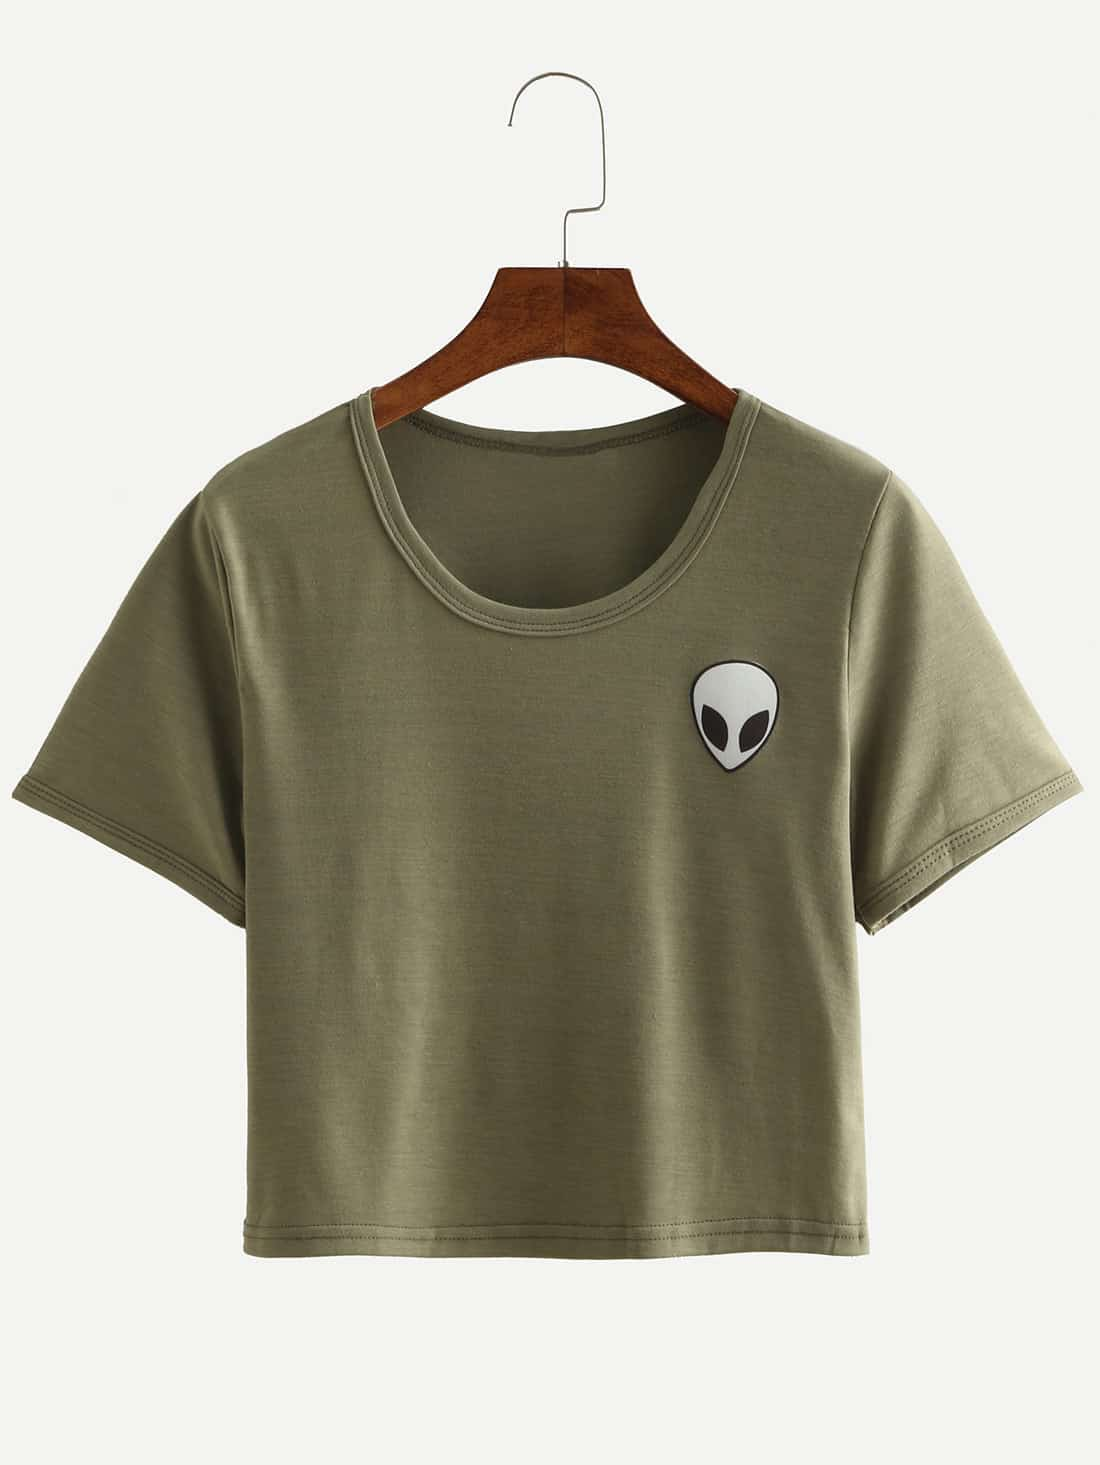 Cover your body with amazing Crop t-shirts from Zazzle. Search for your new favorite shirt from thousands of great designs!